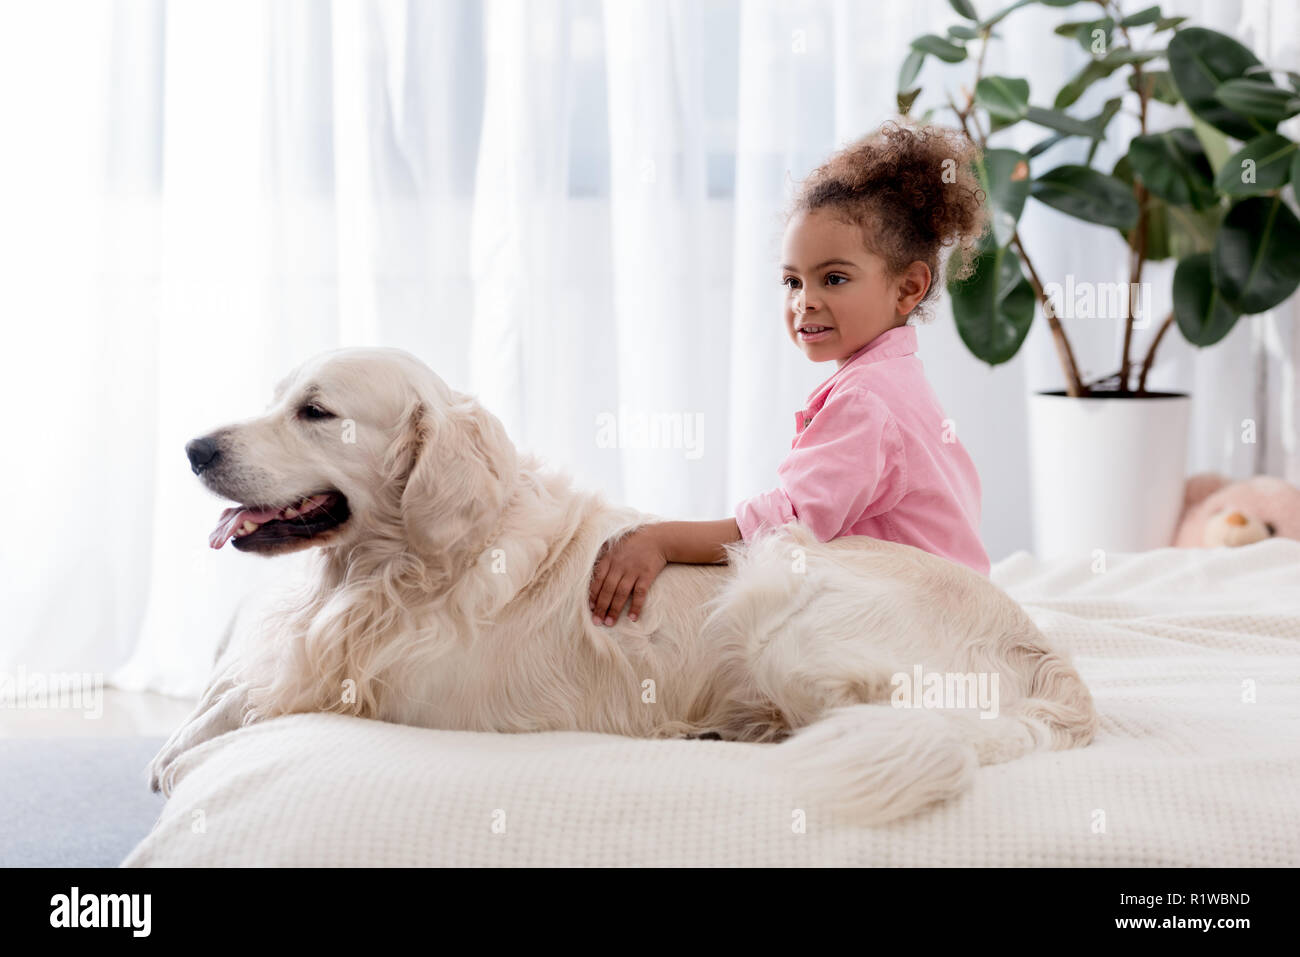 Adorable african american kid hugs her dog on the bed - Stock Image